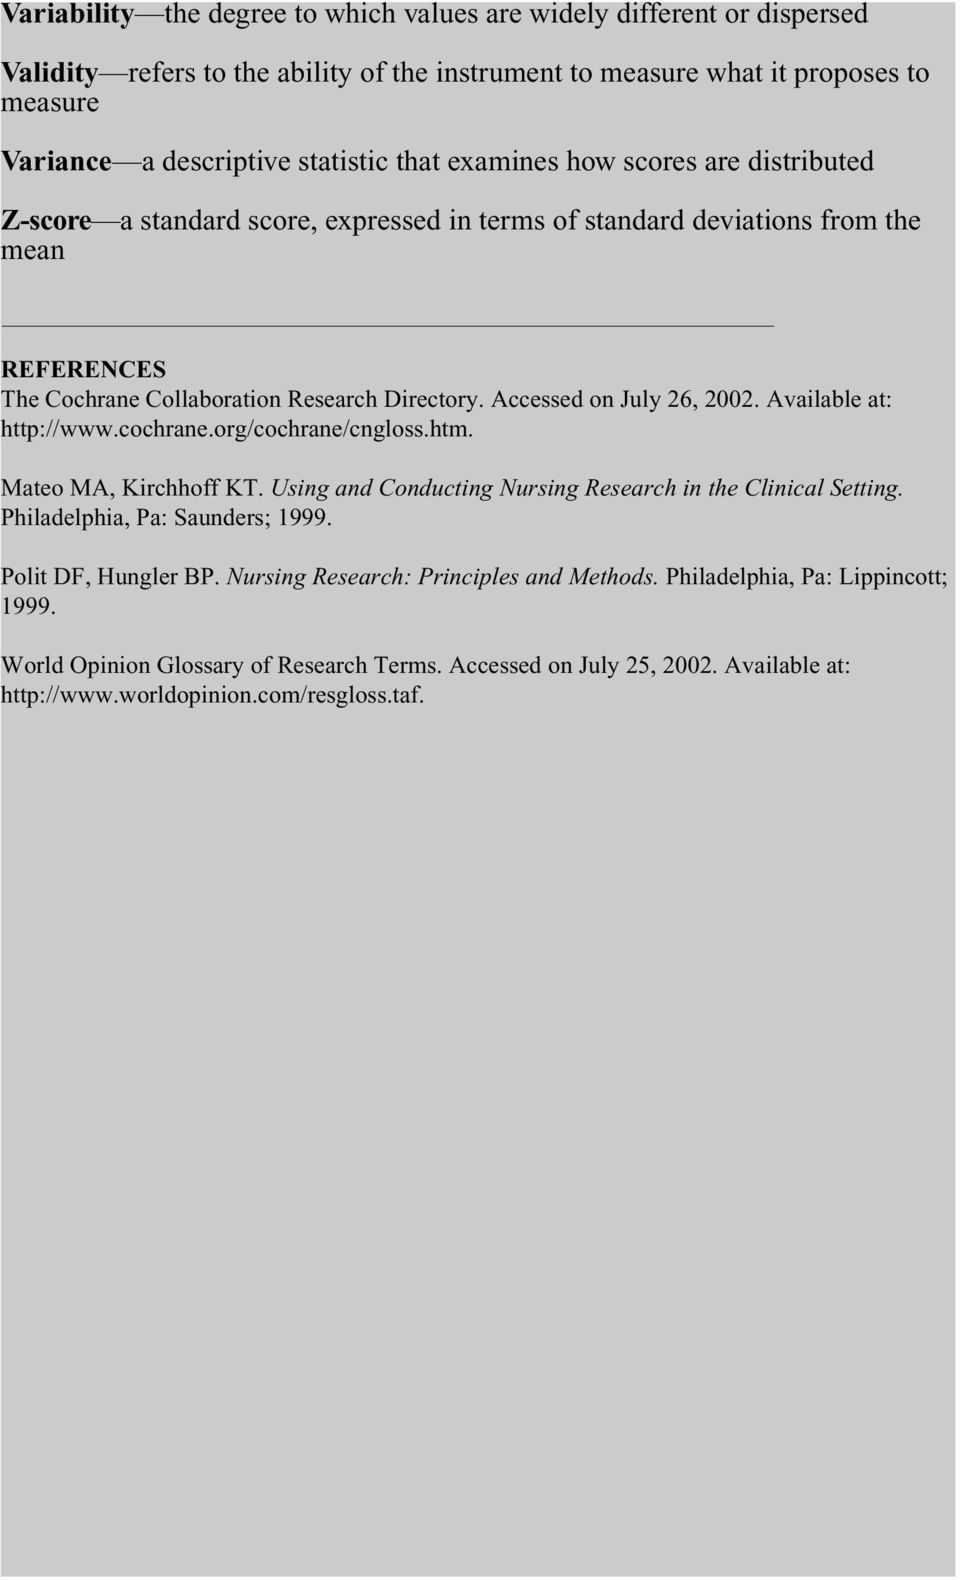 Accessed on July 26, 2002. Available at: http://www.cochrane.org/cochrane/cngloss.htm. Mateo MA, Kirchhoff KT. Using and Conducting Nursing Research in the Clinical Setting.